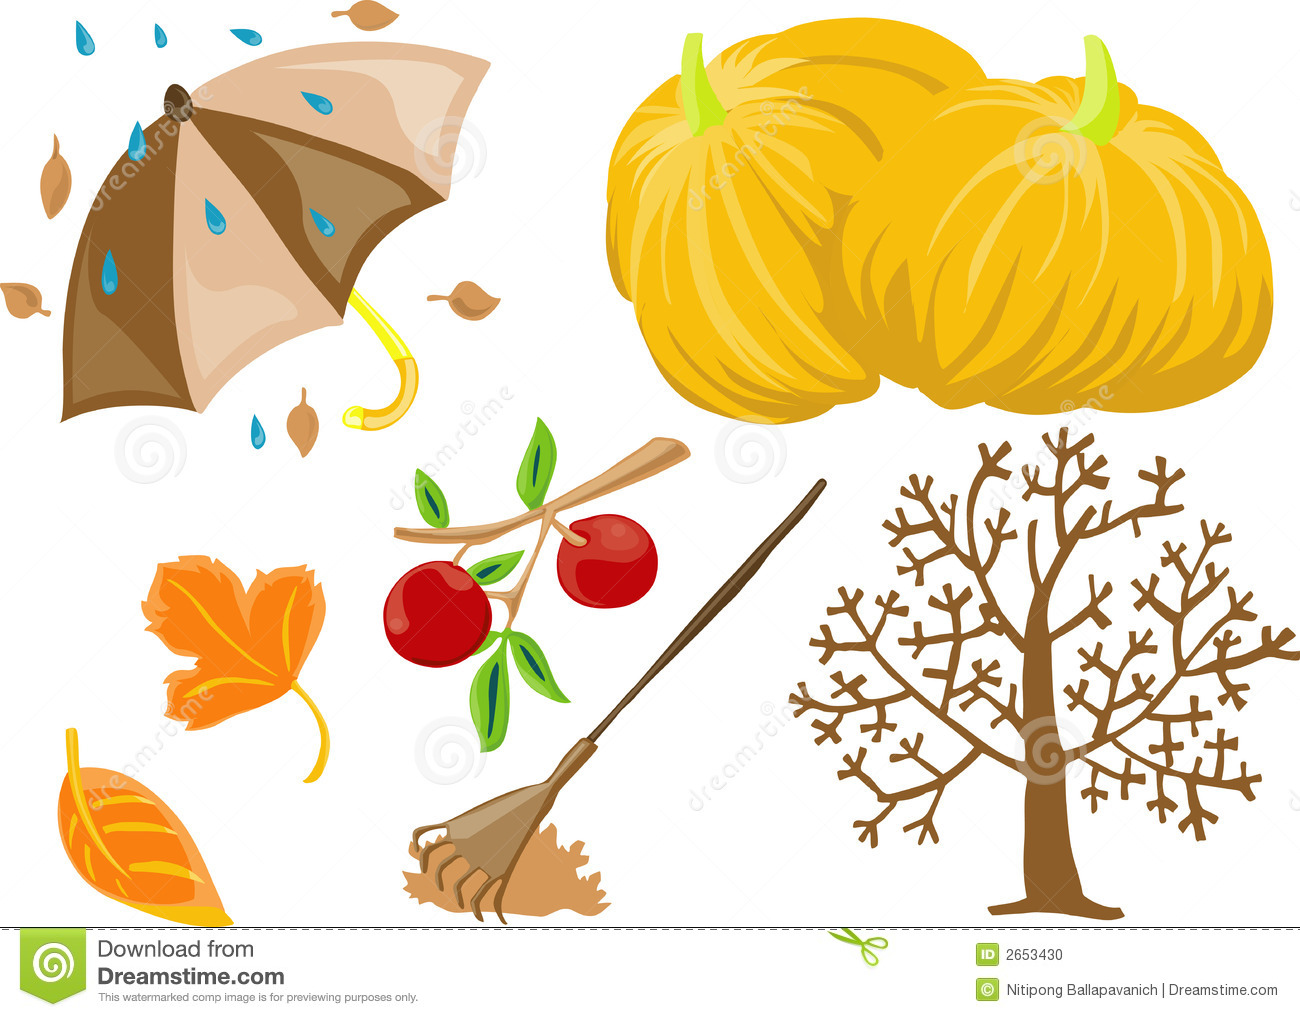 Clip art for autumn.